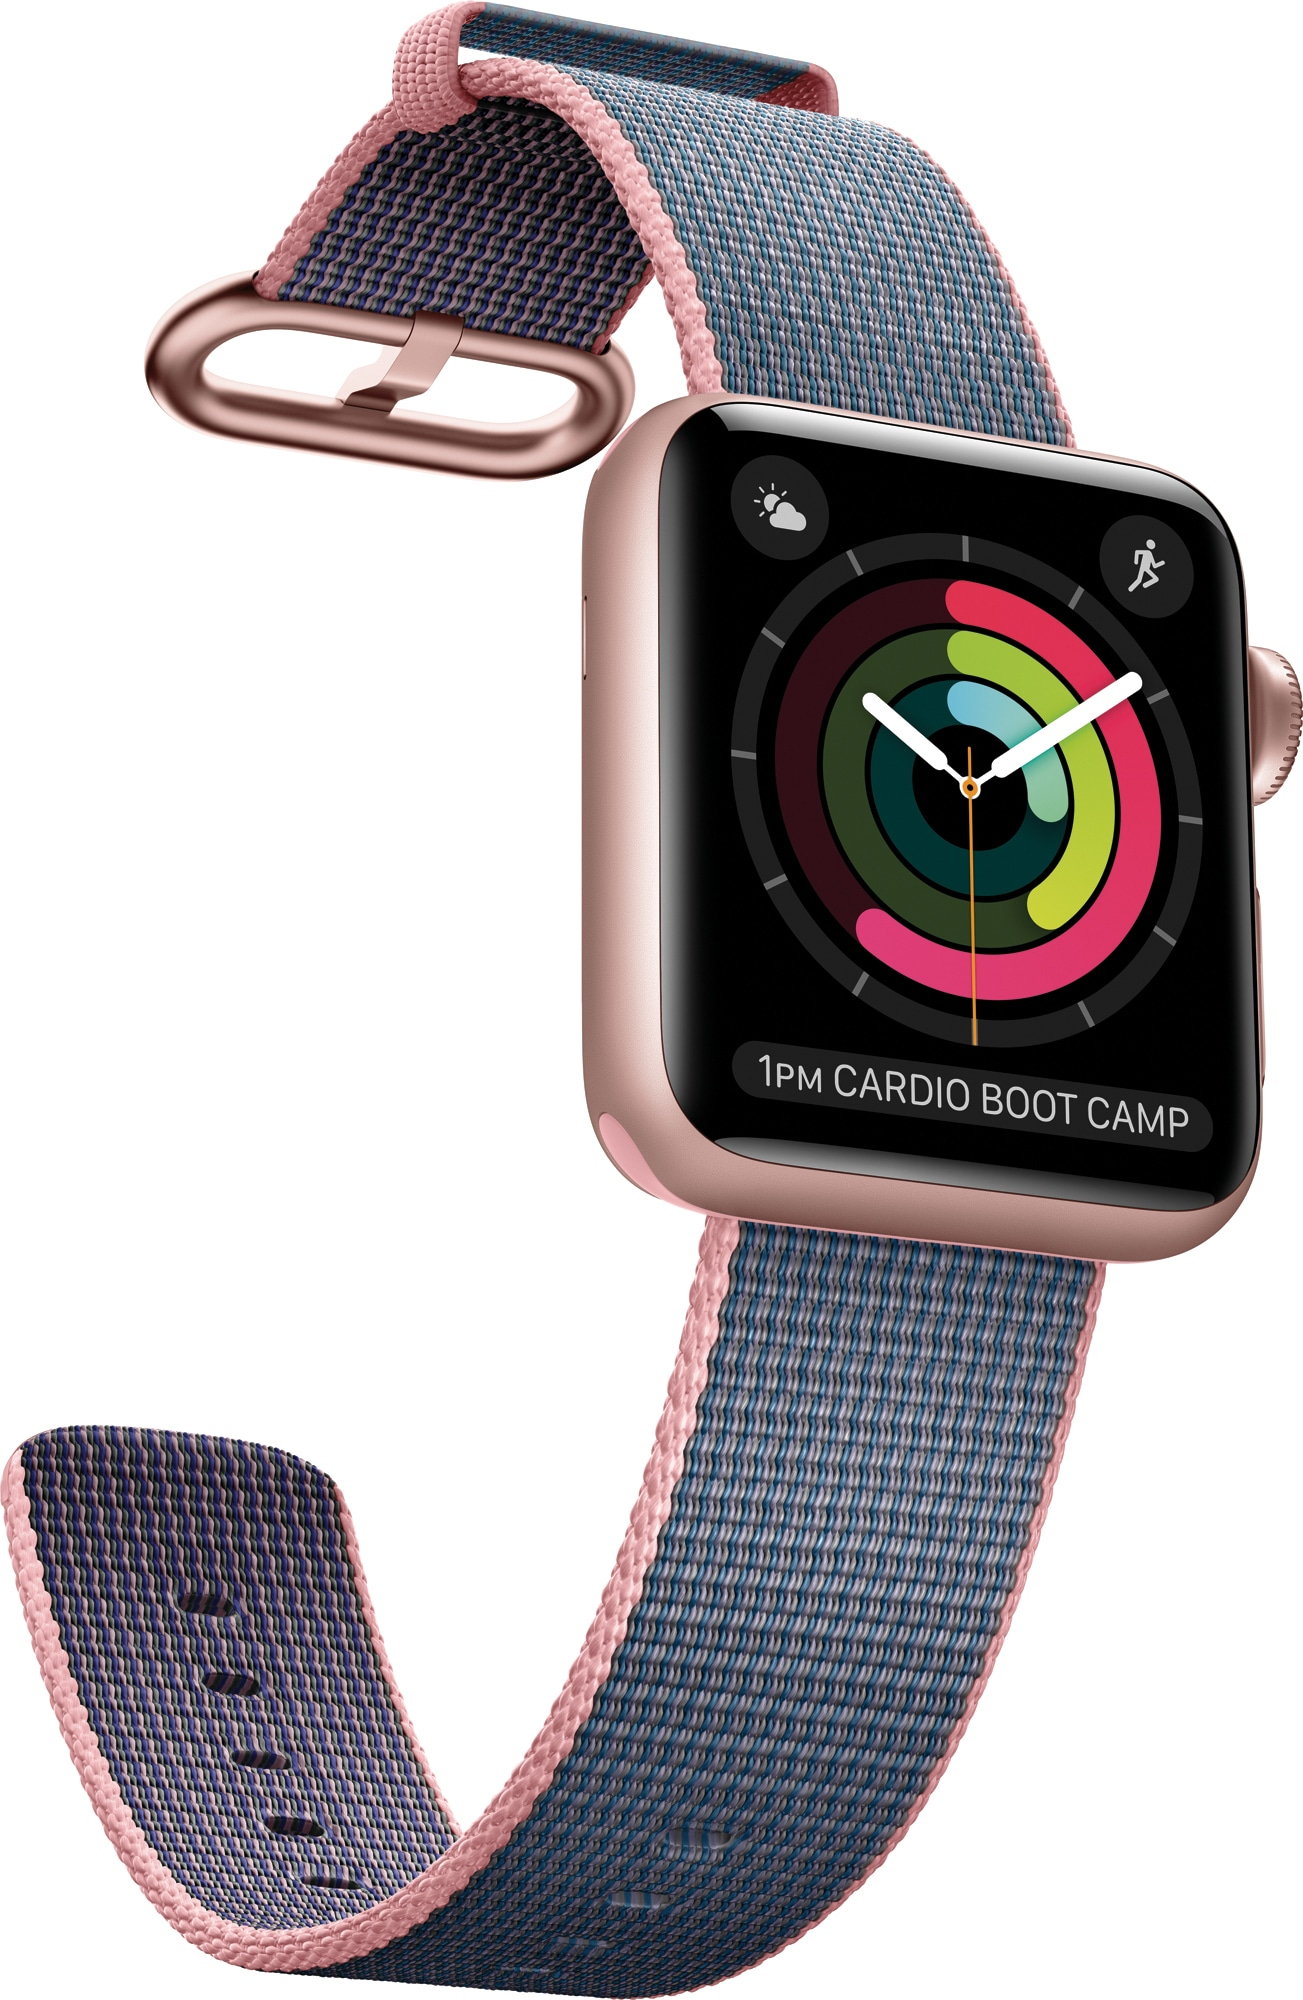 Apple Watch Series 2 ouro rosa com pulseira de trama de nylon azul e rosa